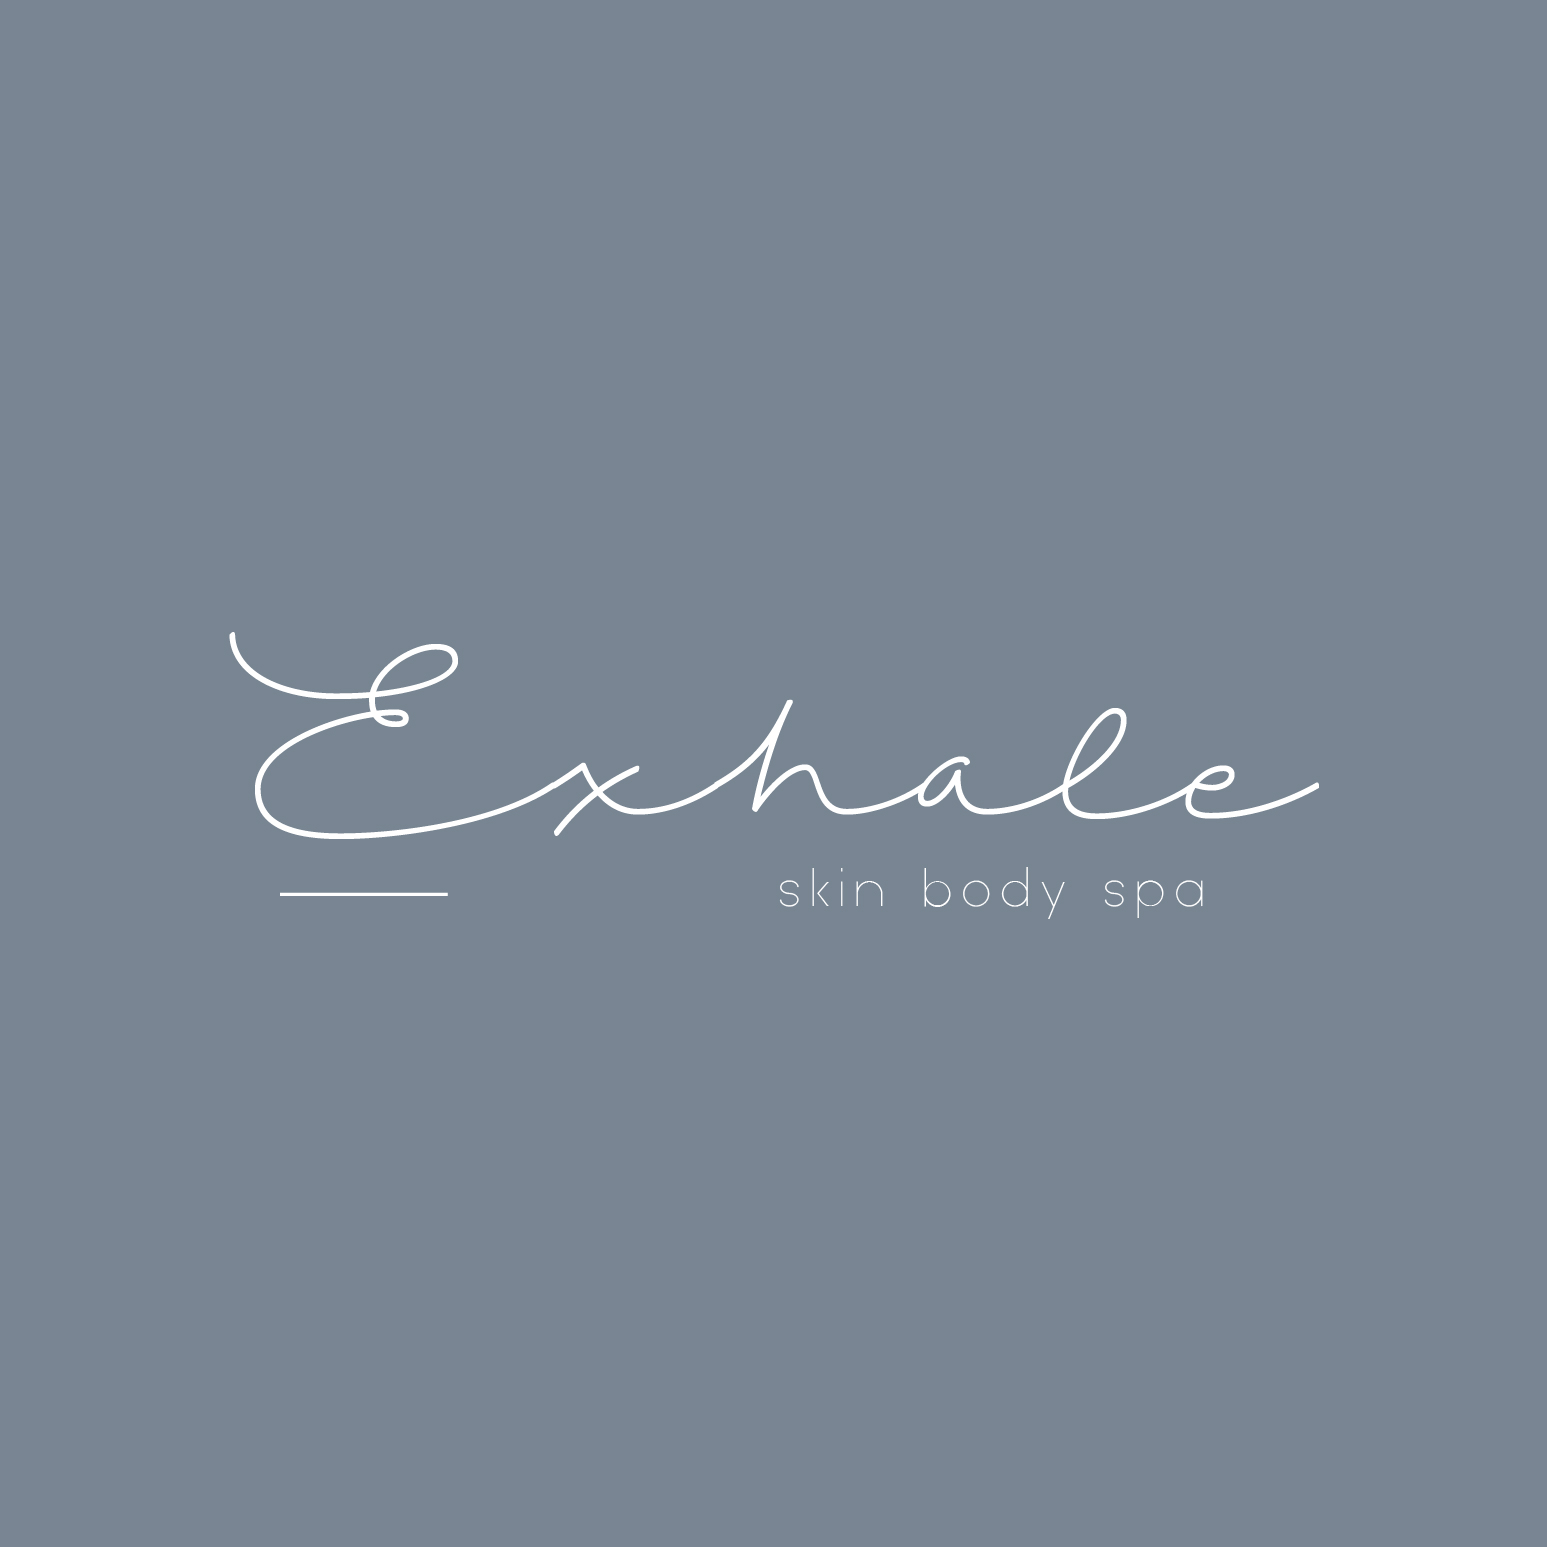 Exhale Skin Body Spa Logo and Images